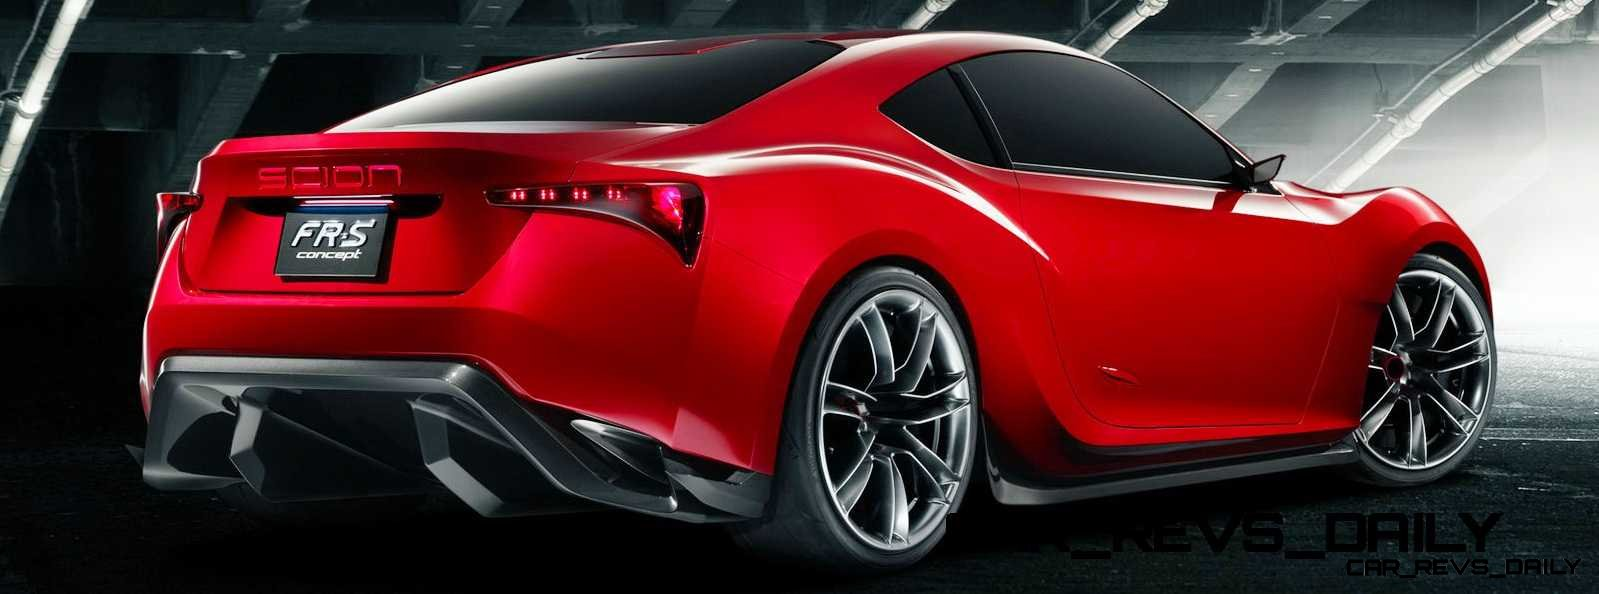 toyota supra past and future 2015 supra renderings 41. Black Bedroom Furniture Sets. Home Design Ideas